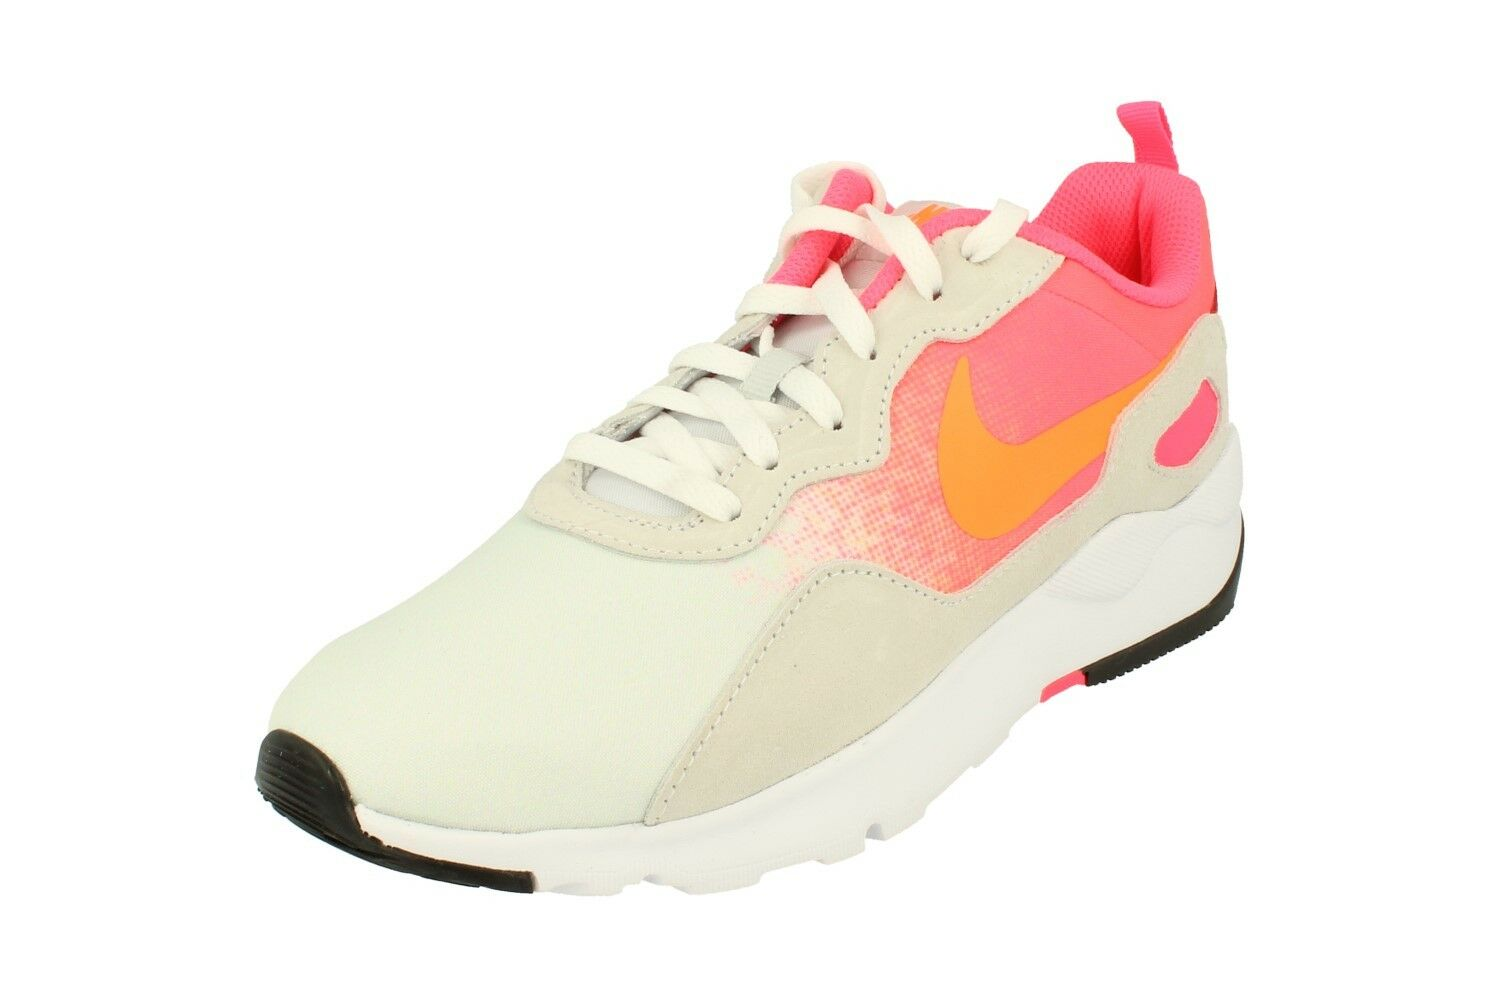 f7d399cc400bb4 Nike Ld Runner Basket Course 882267 005 Femmes Baskets nhguoi221 ...